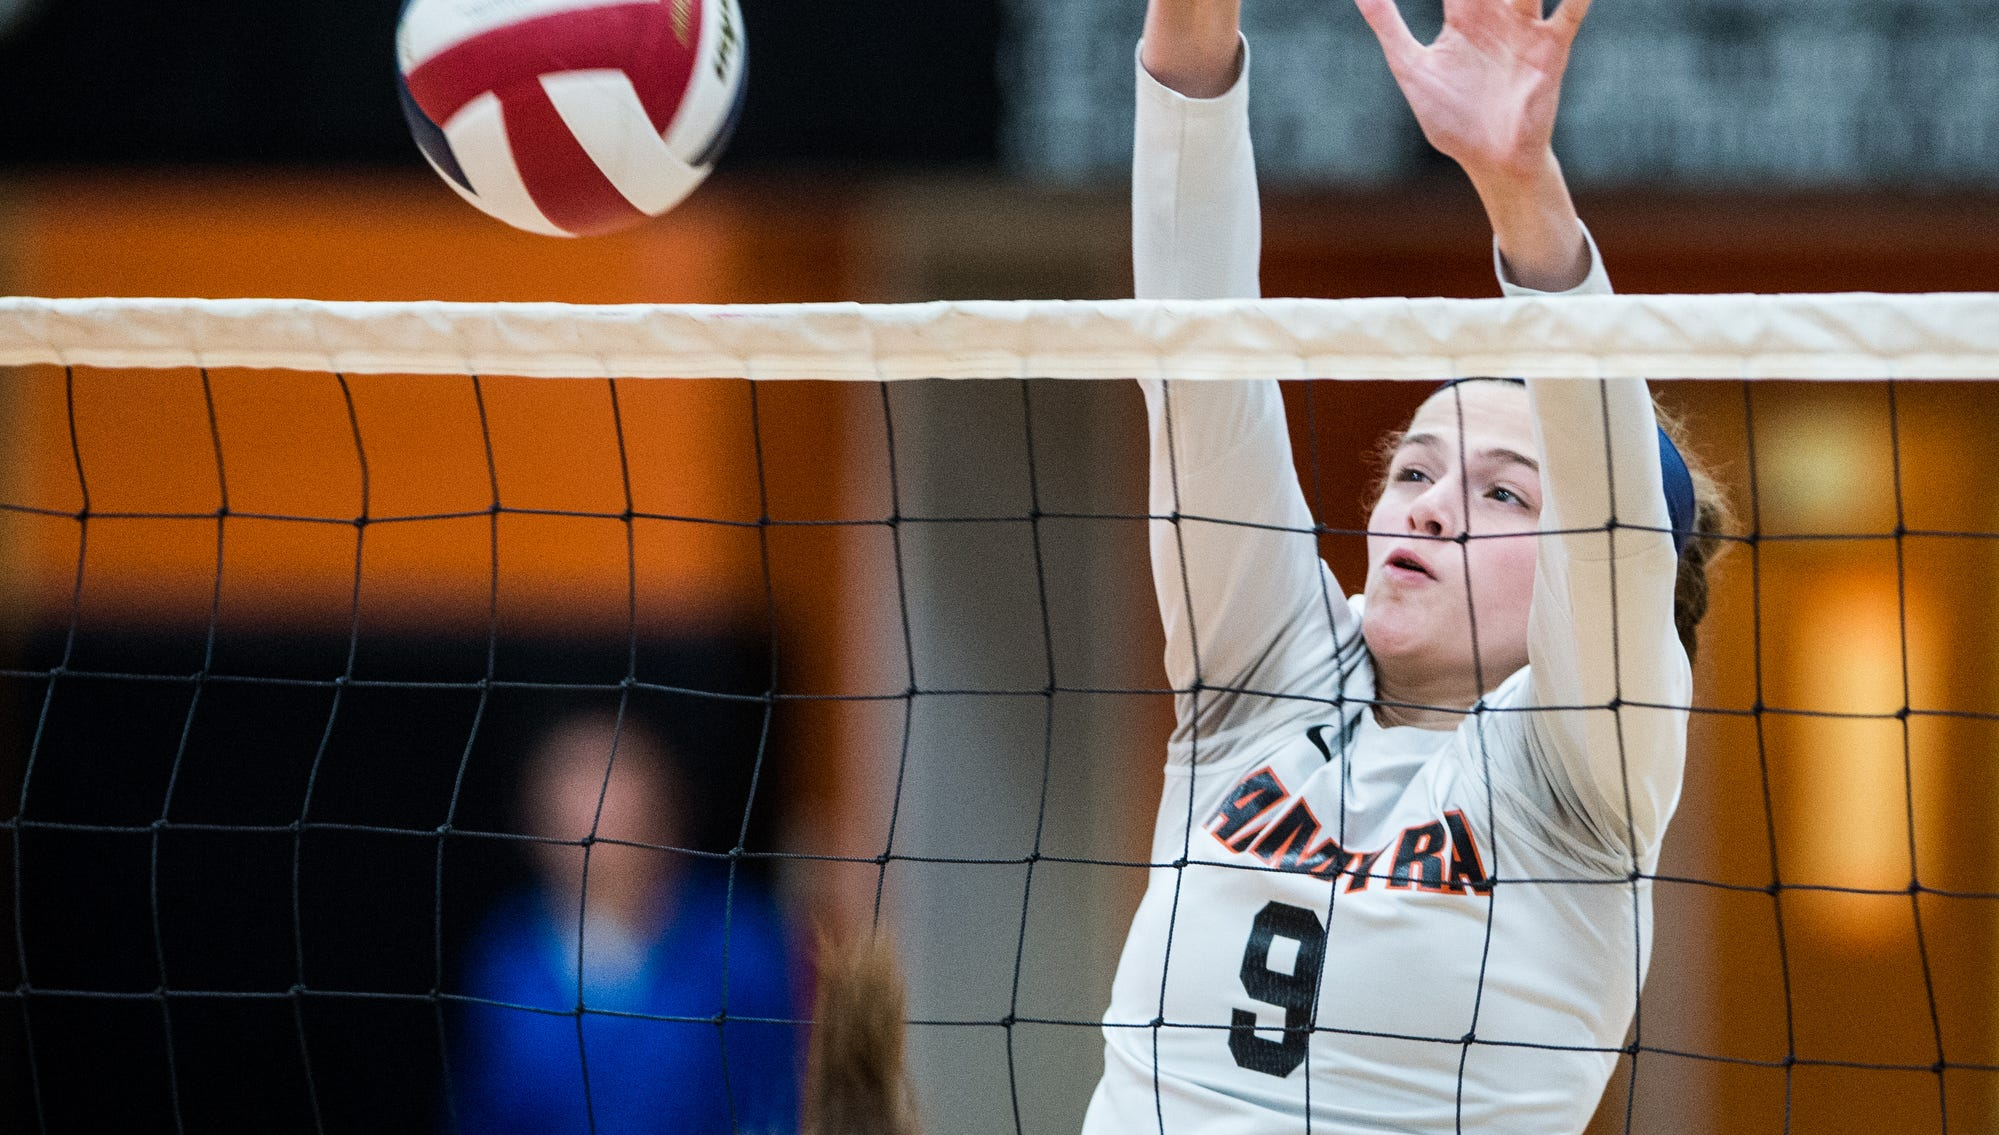 Palmyra's Taylor McInerney had 15 kills, 5 aces and 2 blocks in the Cougars' 3-0 district quarterfinal win over Fleetwood on Tuesday night.